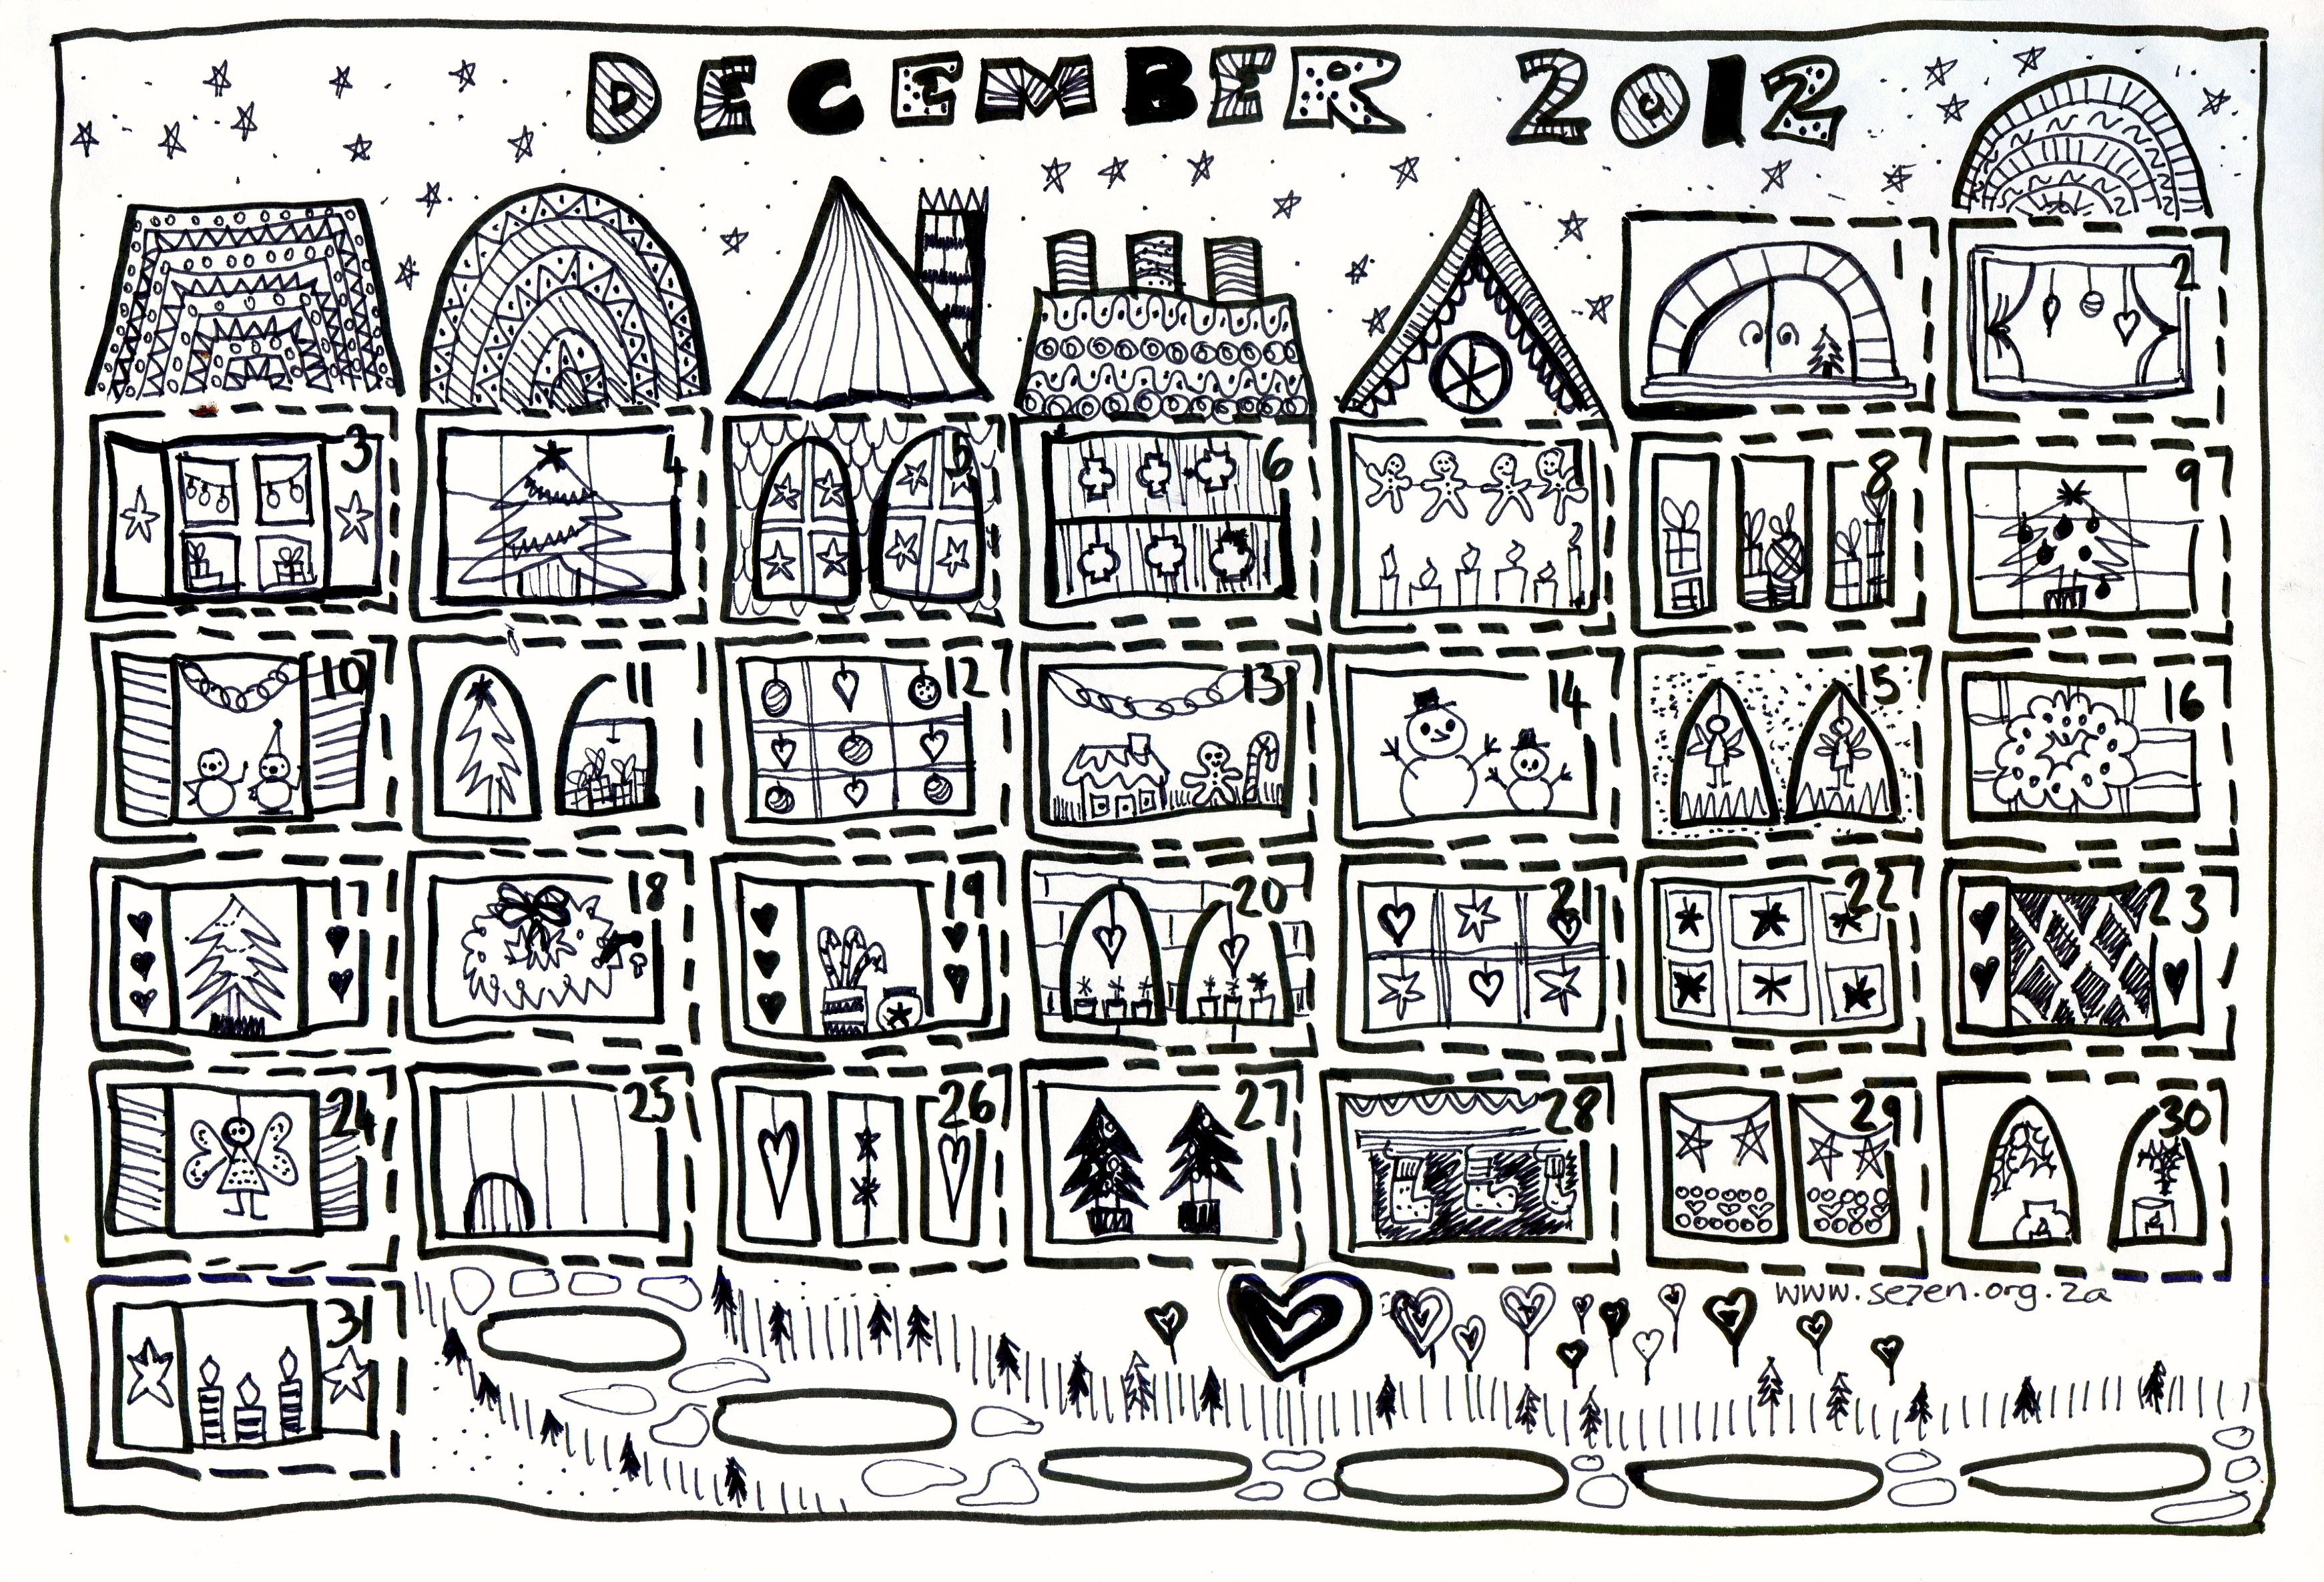 advent calendar coloring pages - Forte.euforic.co